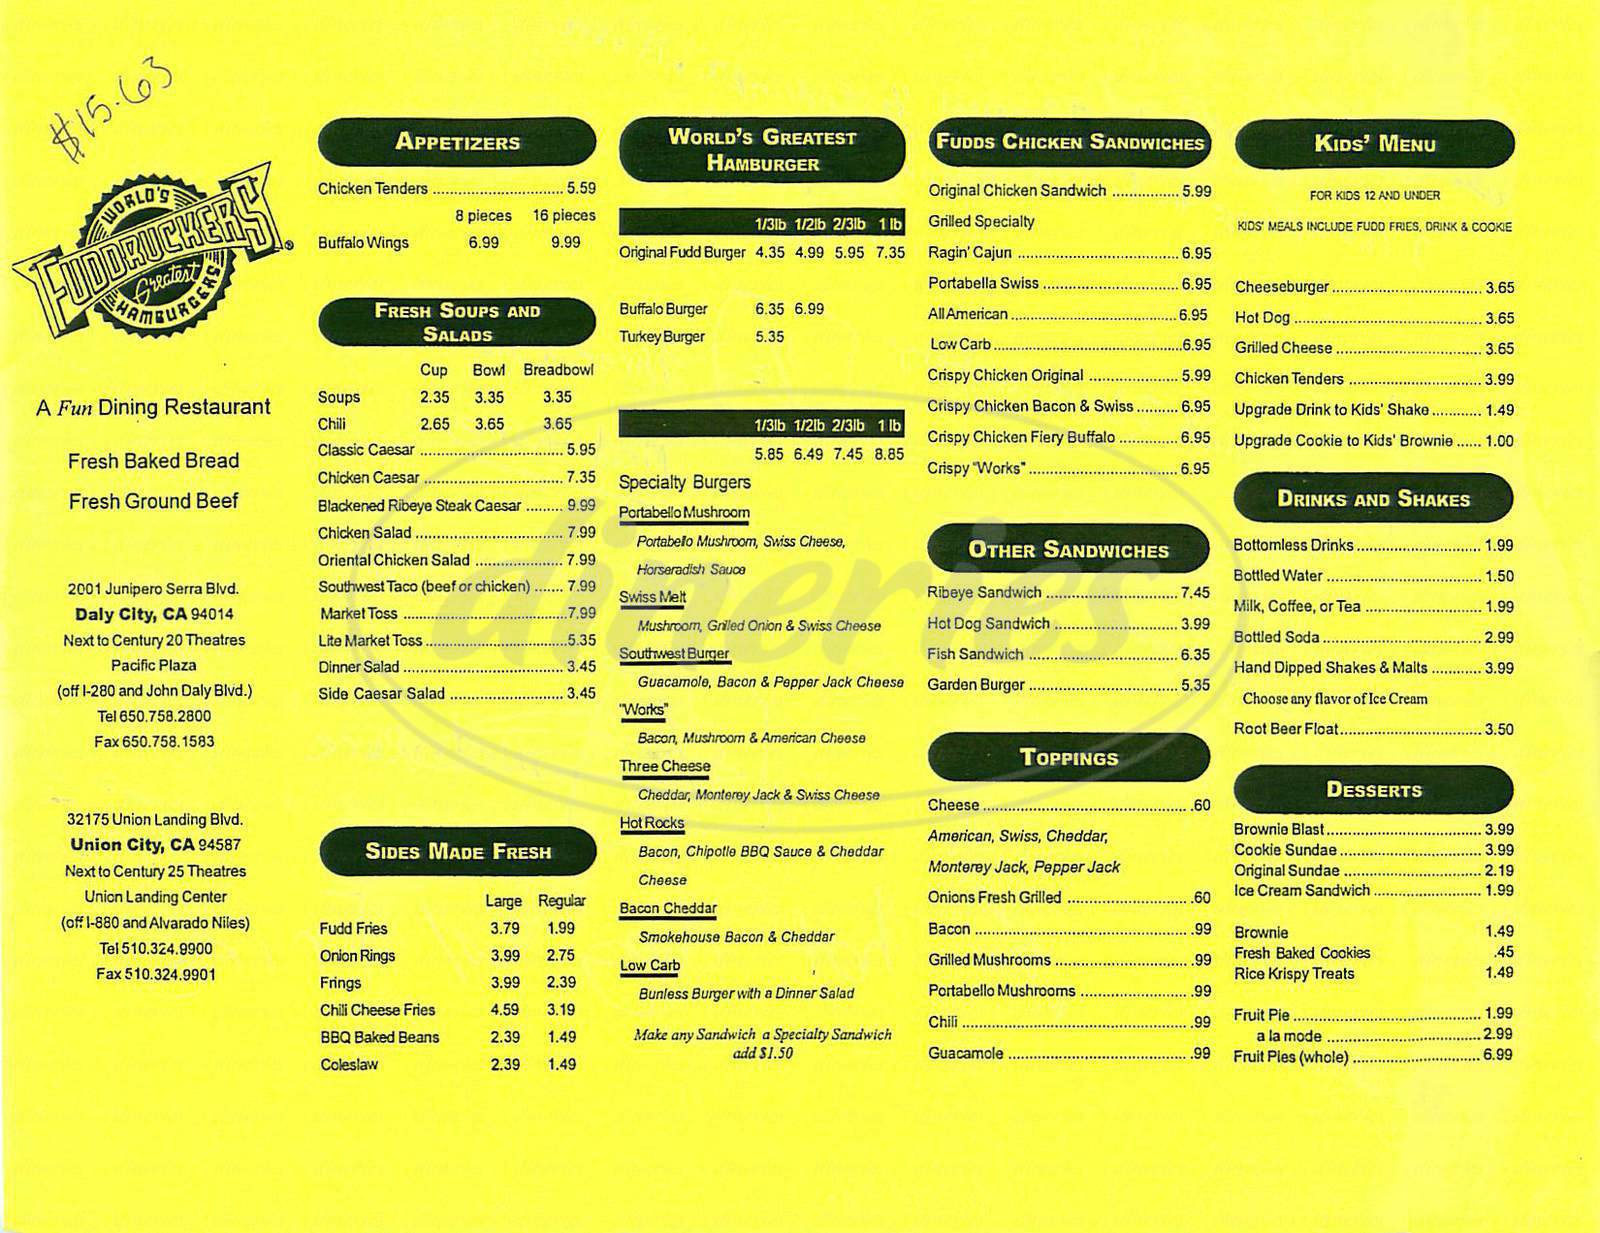 menu for Fuddrucker's